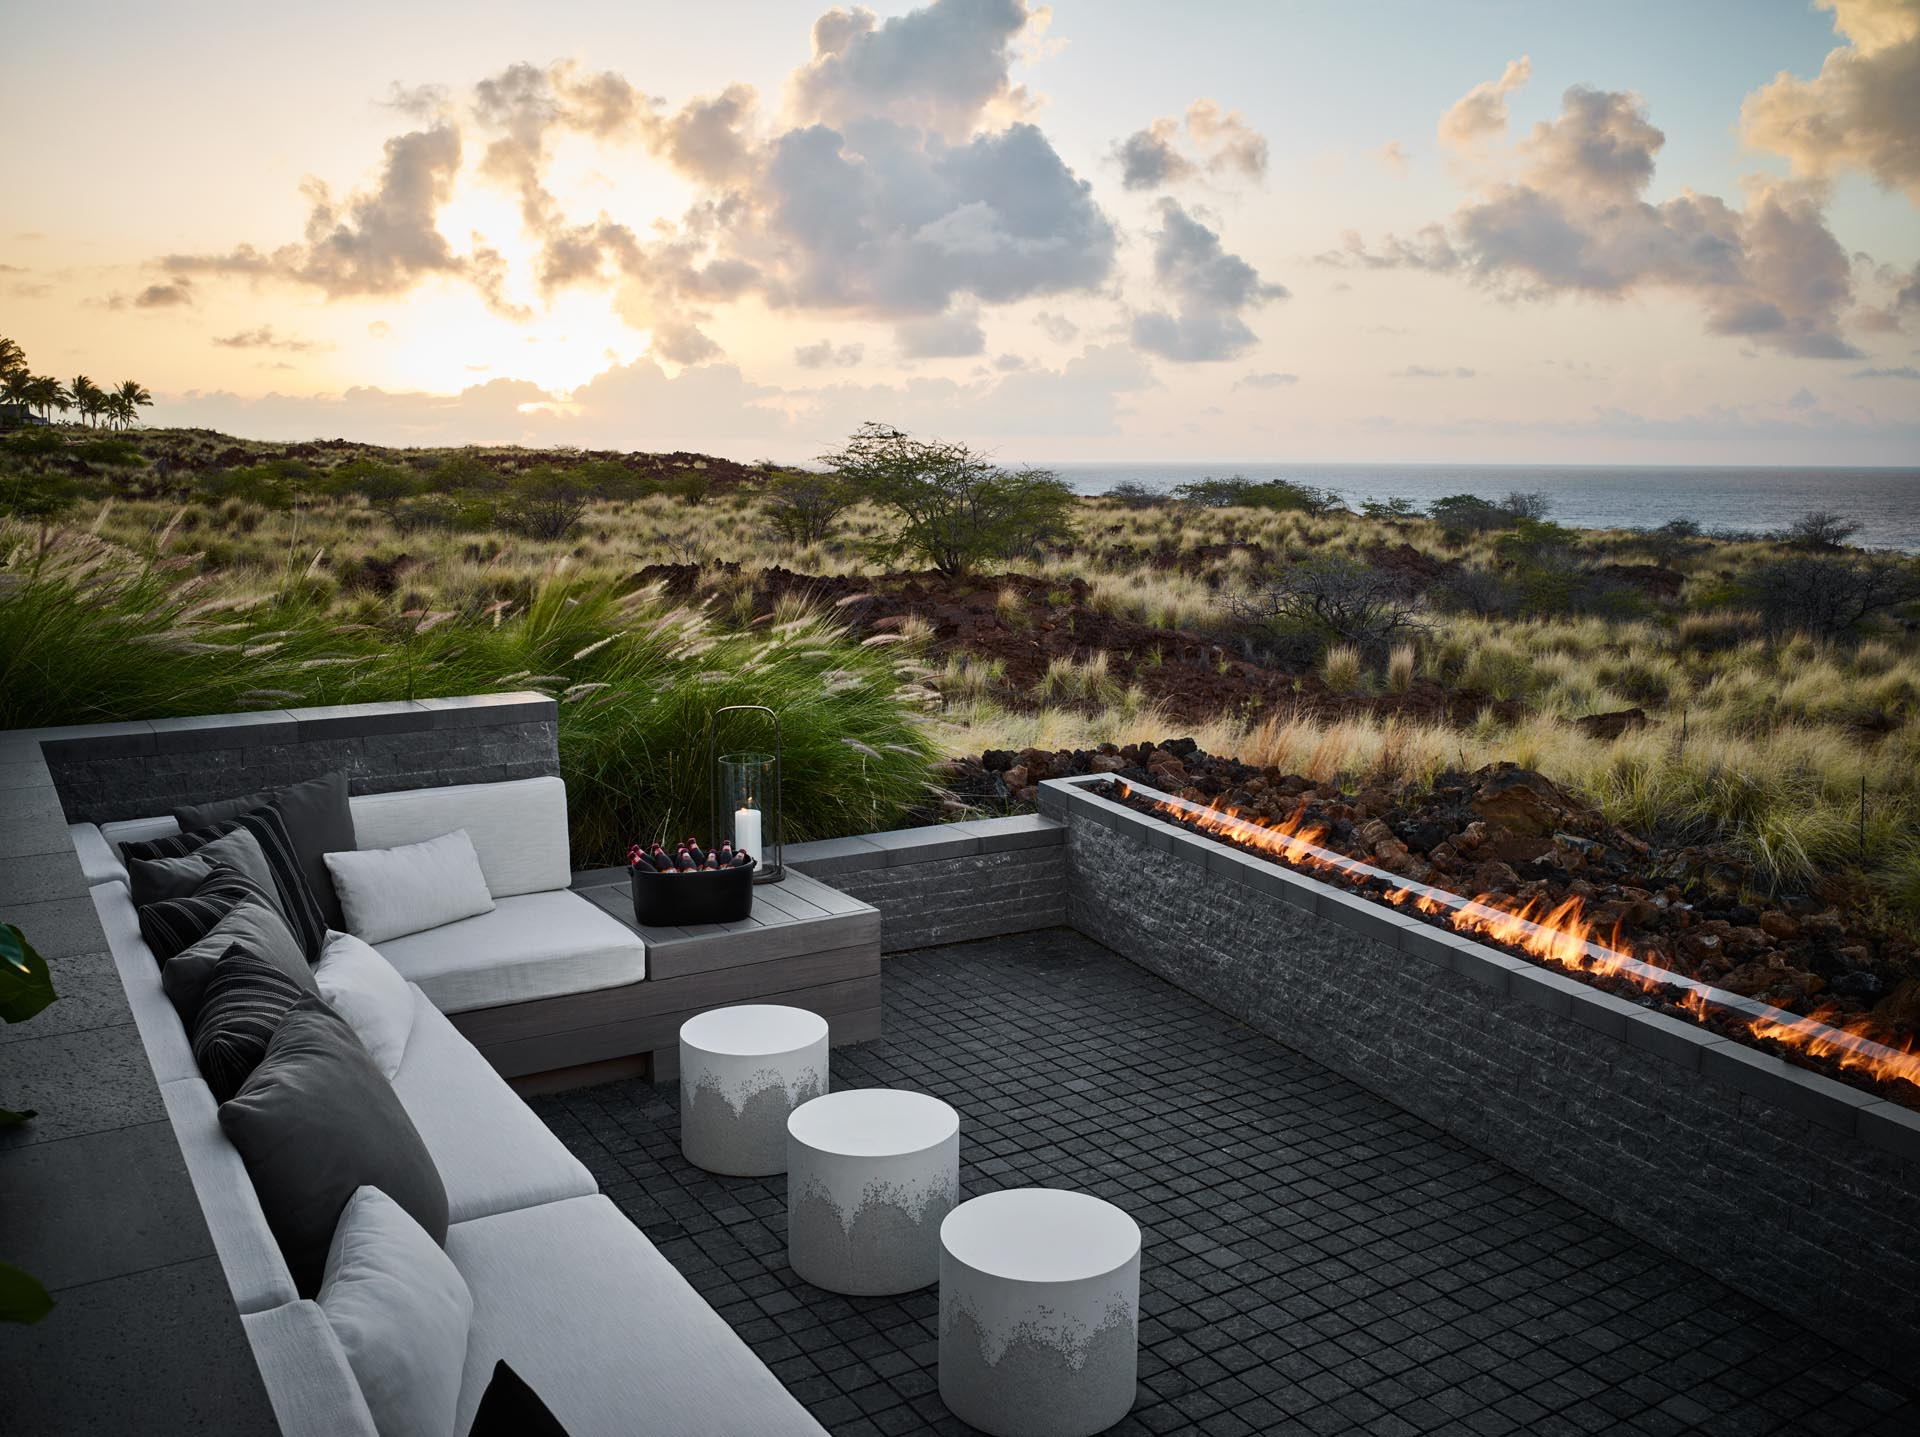 A modern outdoor lounge area with a sofa and a long fireplace.